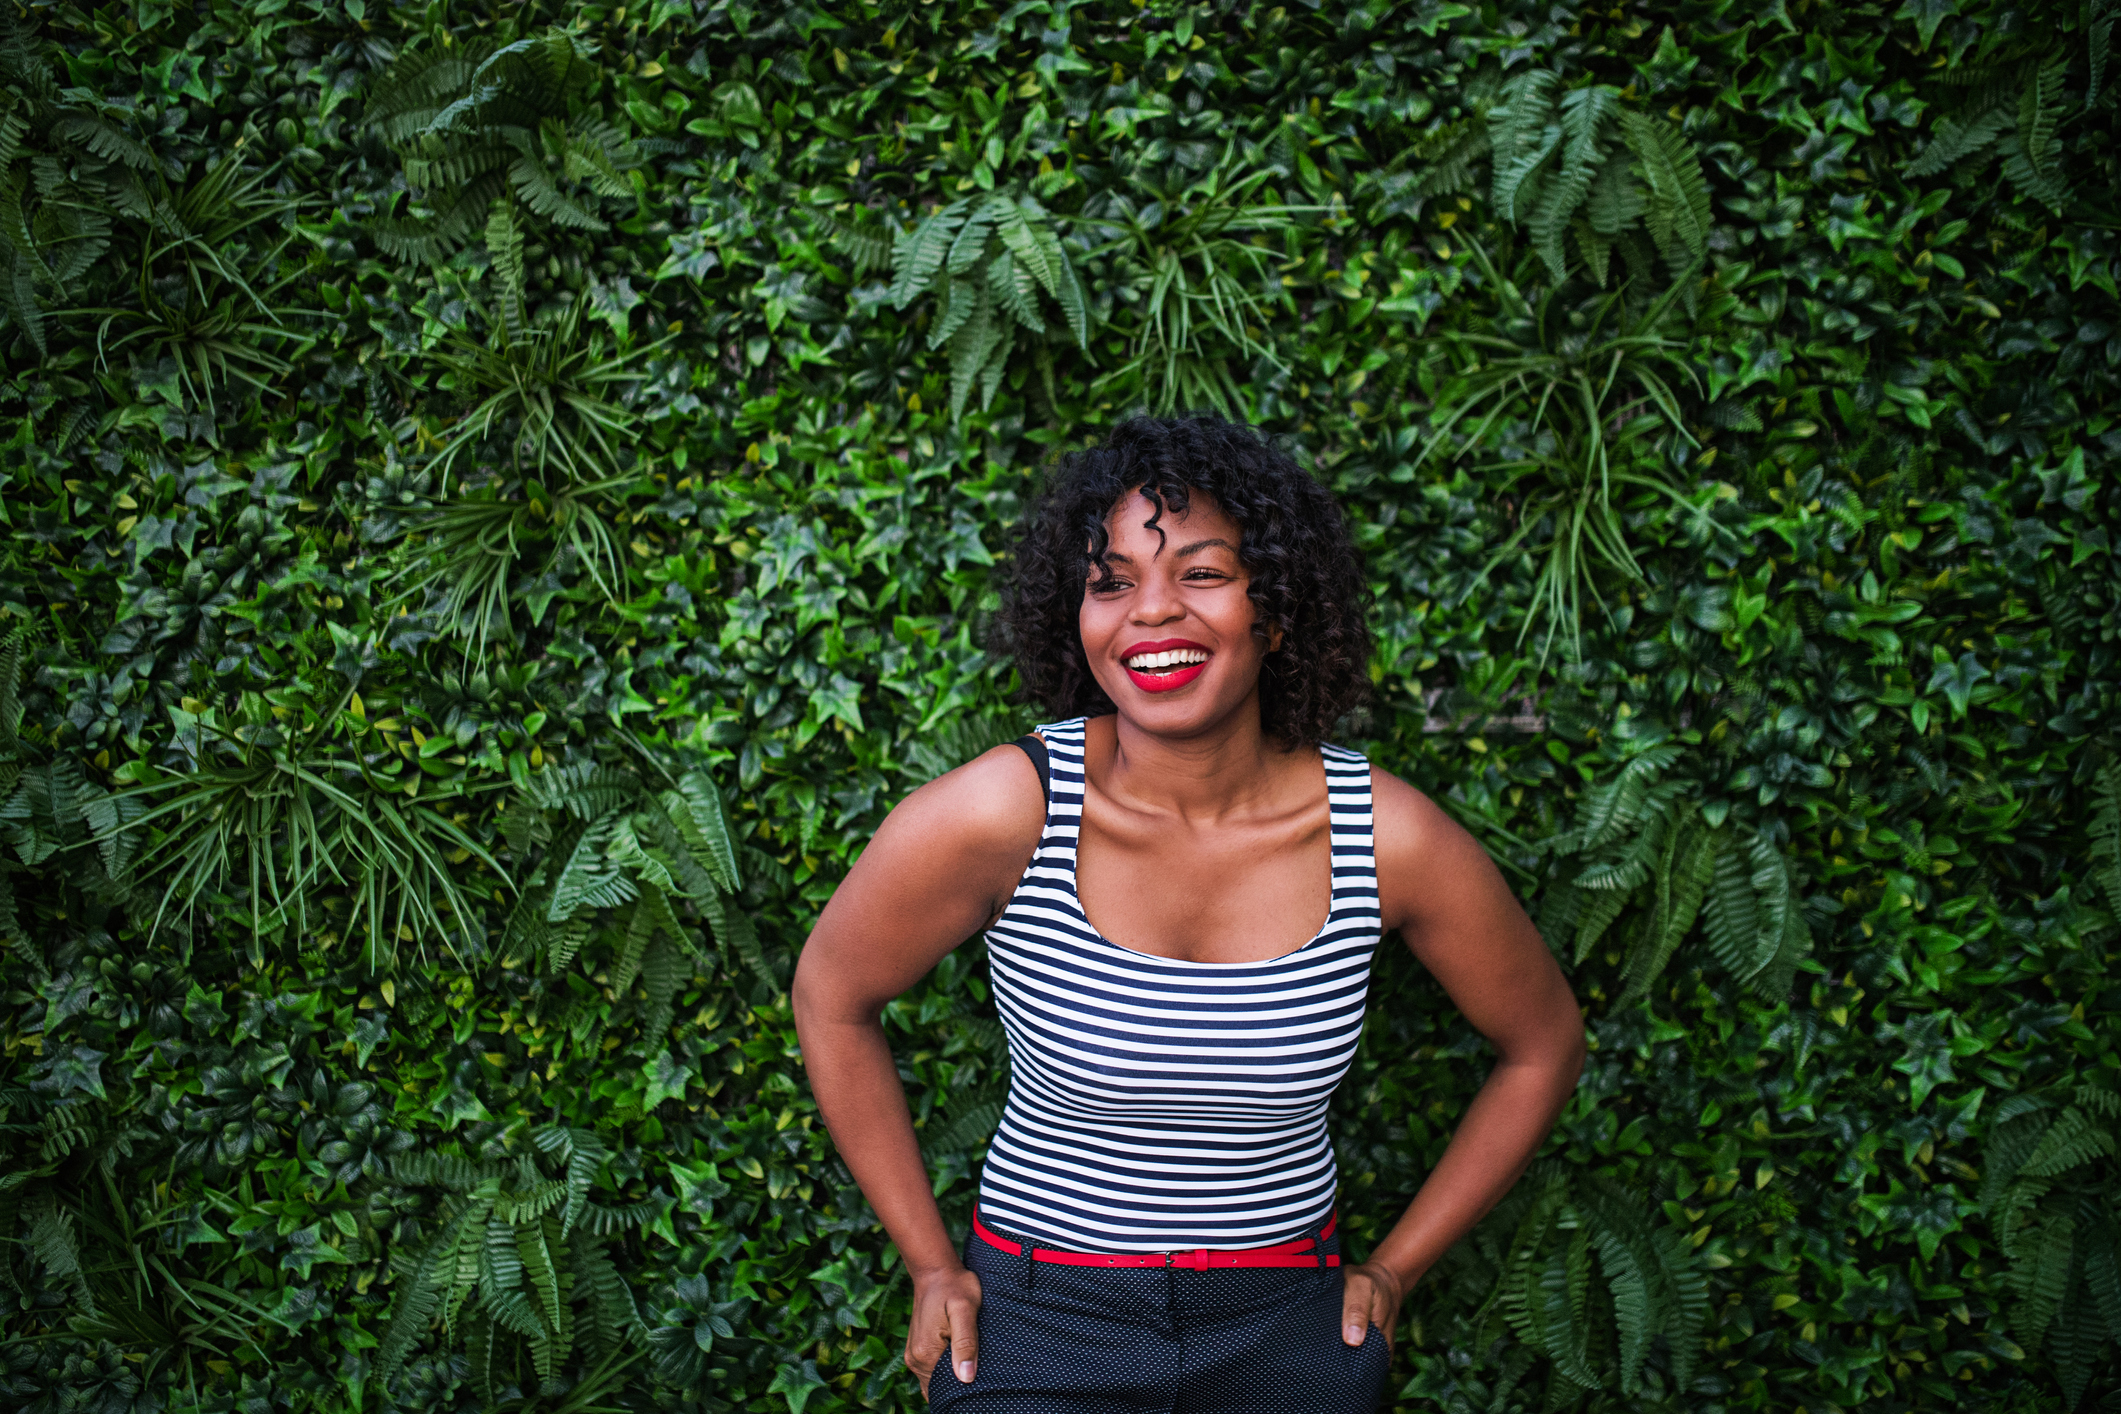 A portrait of a black laughing woman standing against green background of bush leaves.